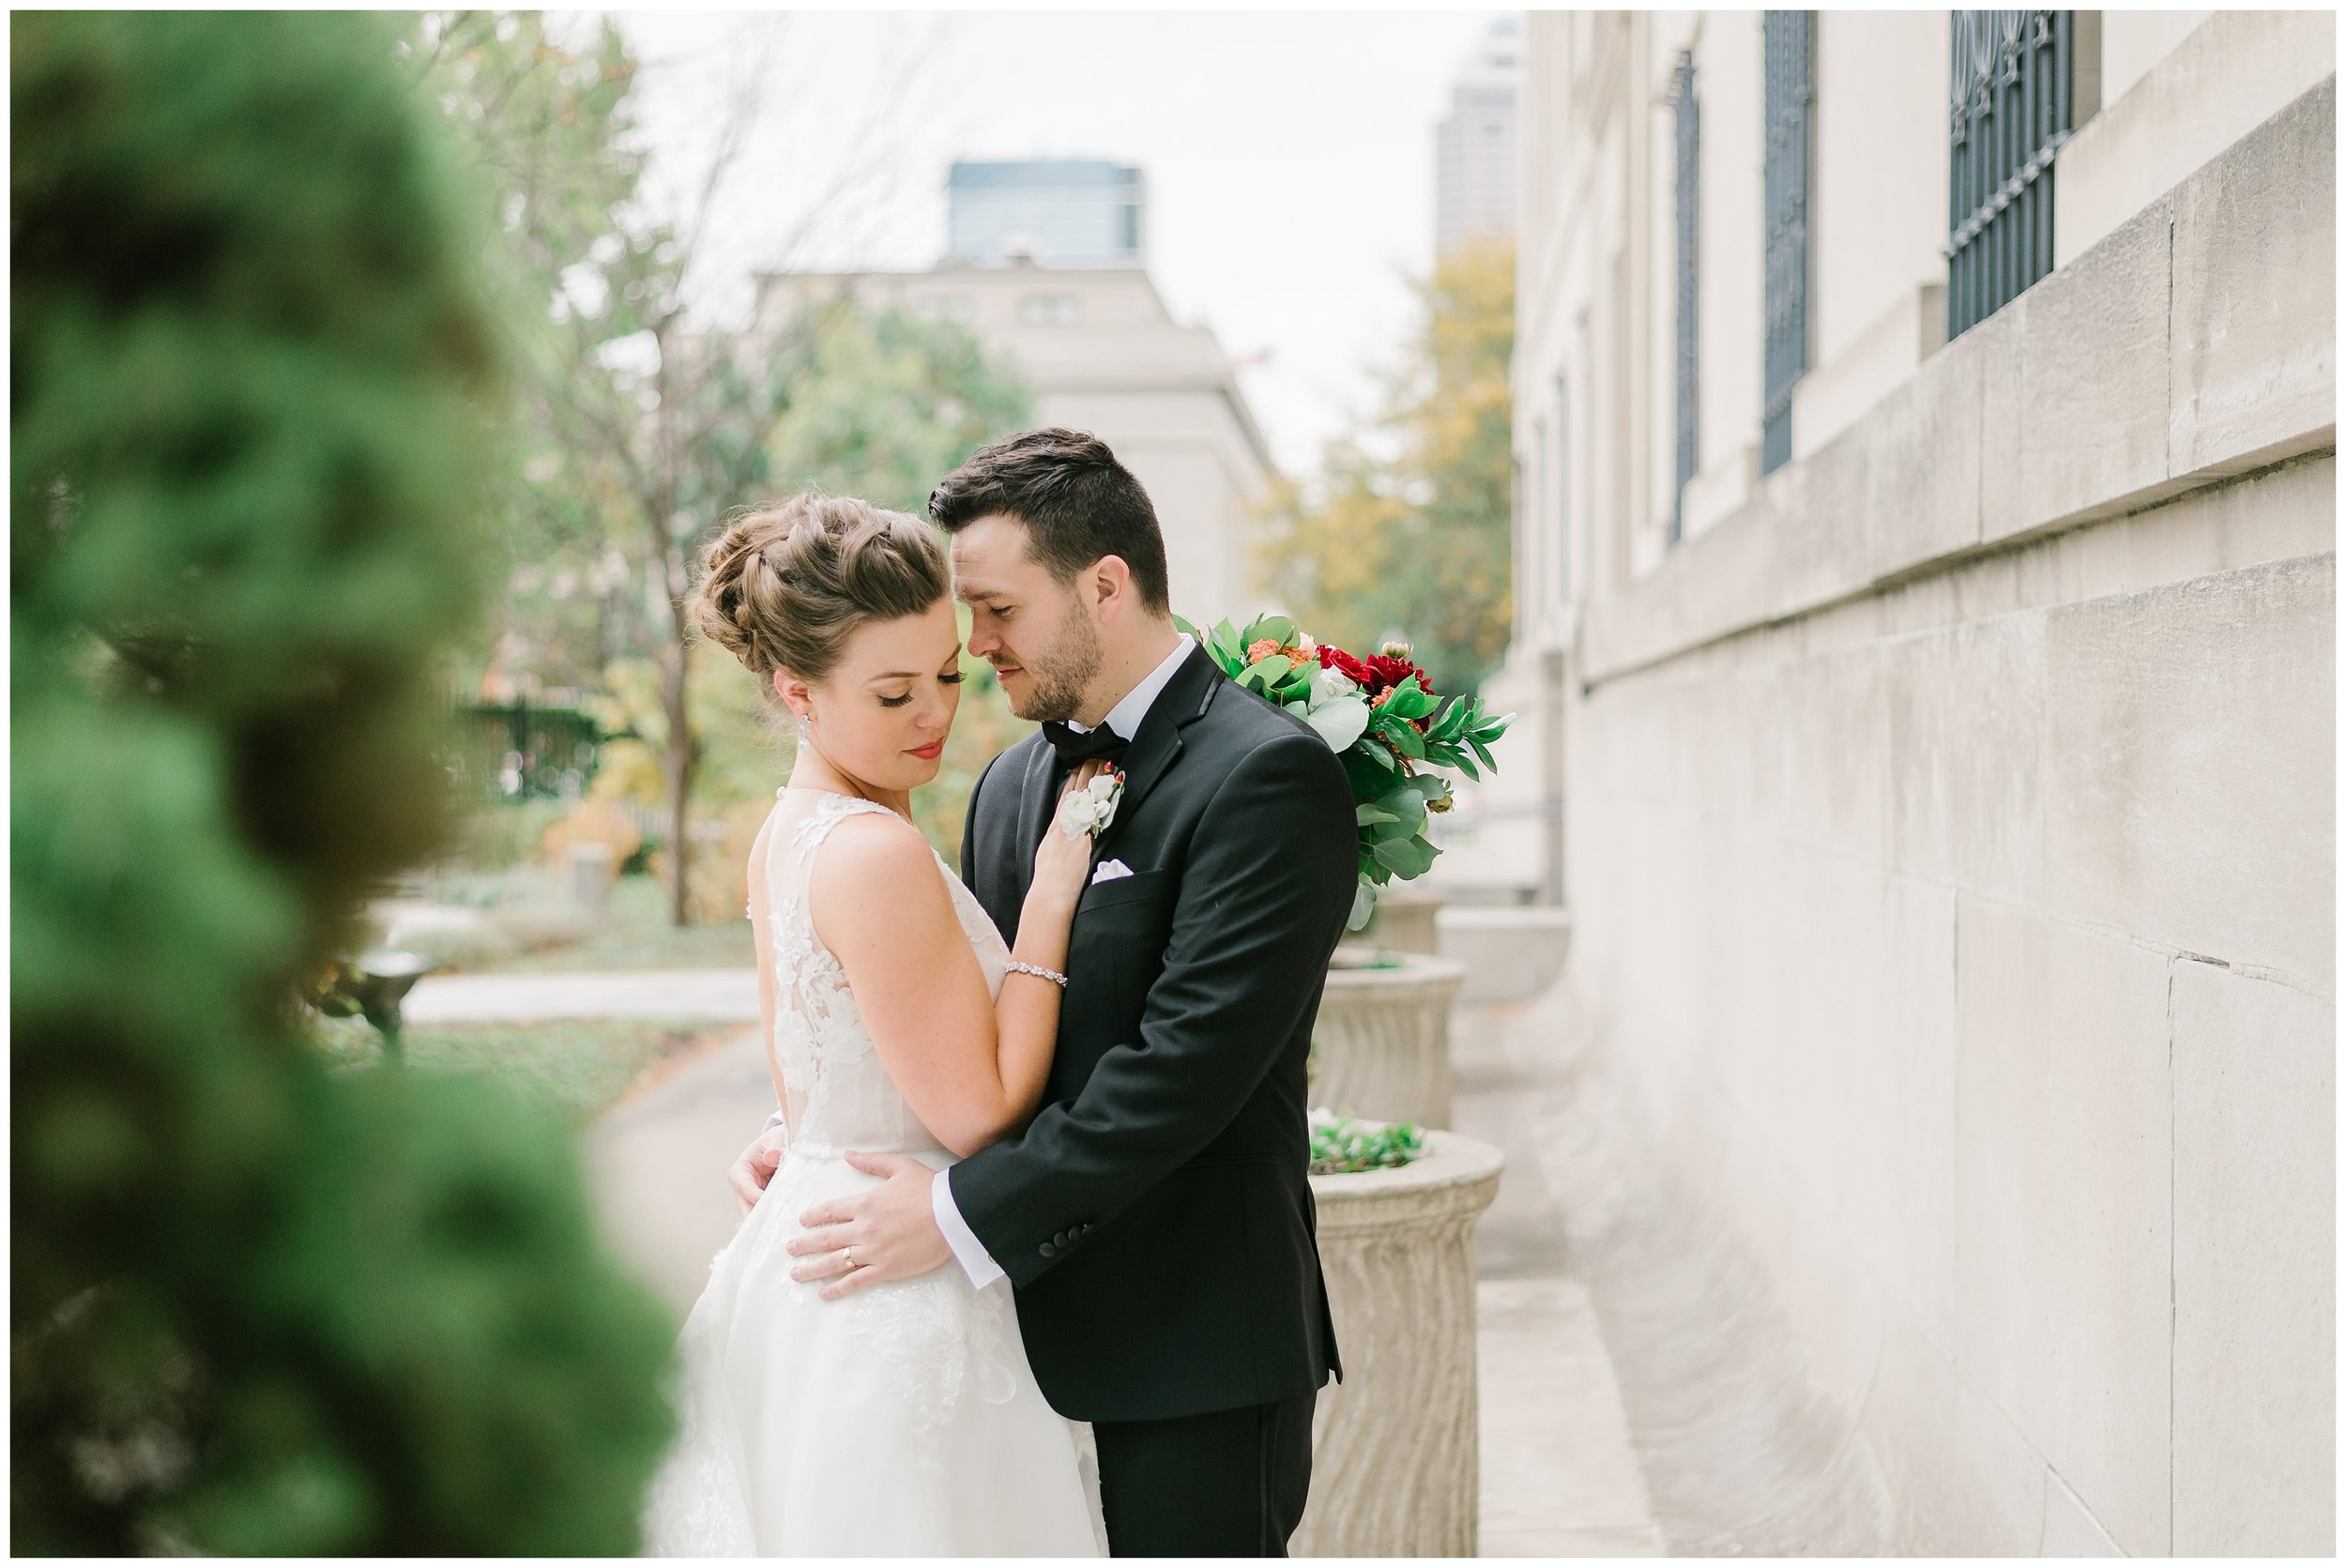 Rebecca_Shehorn_Photography_Indianapolis_Wedding_Photographer_7716.jpg